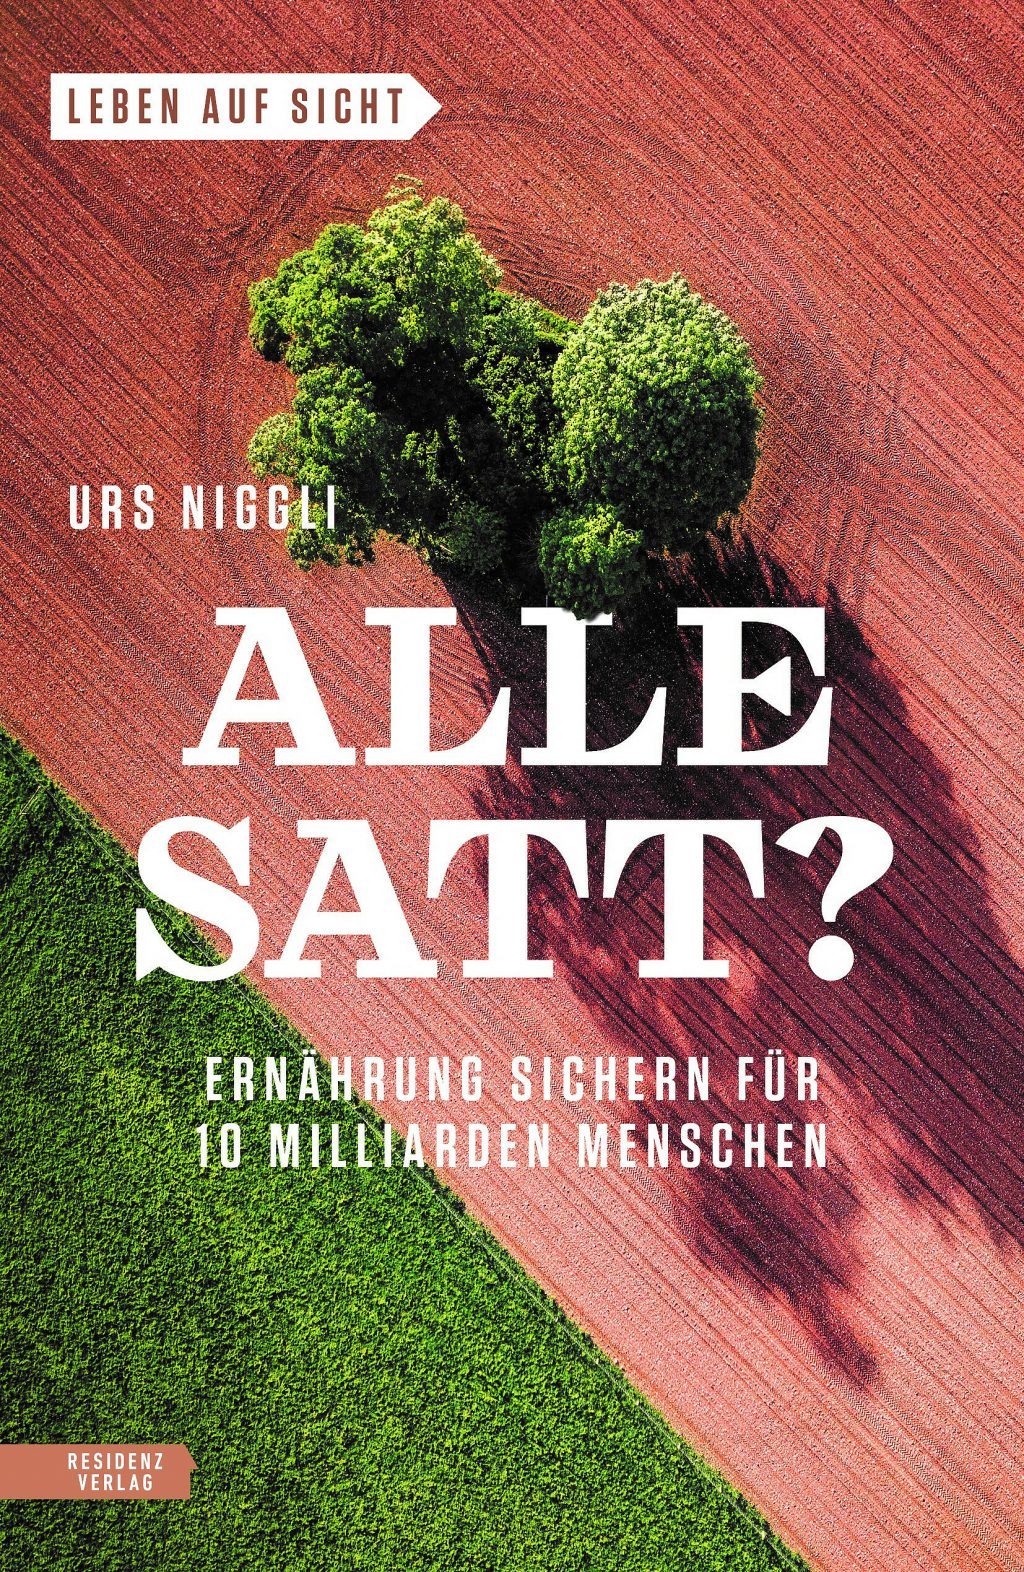 """Review of the book """"Alle Satt?""""  Spectrum of Science"""